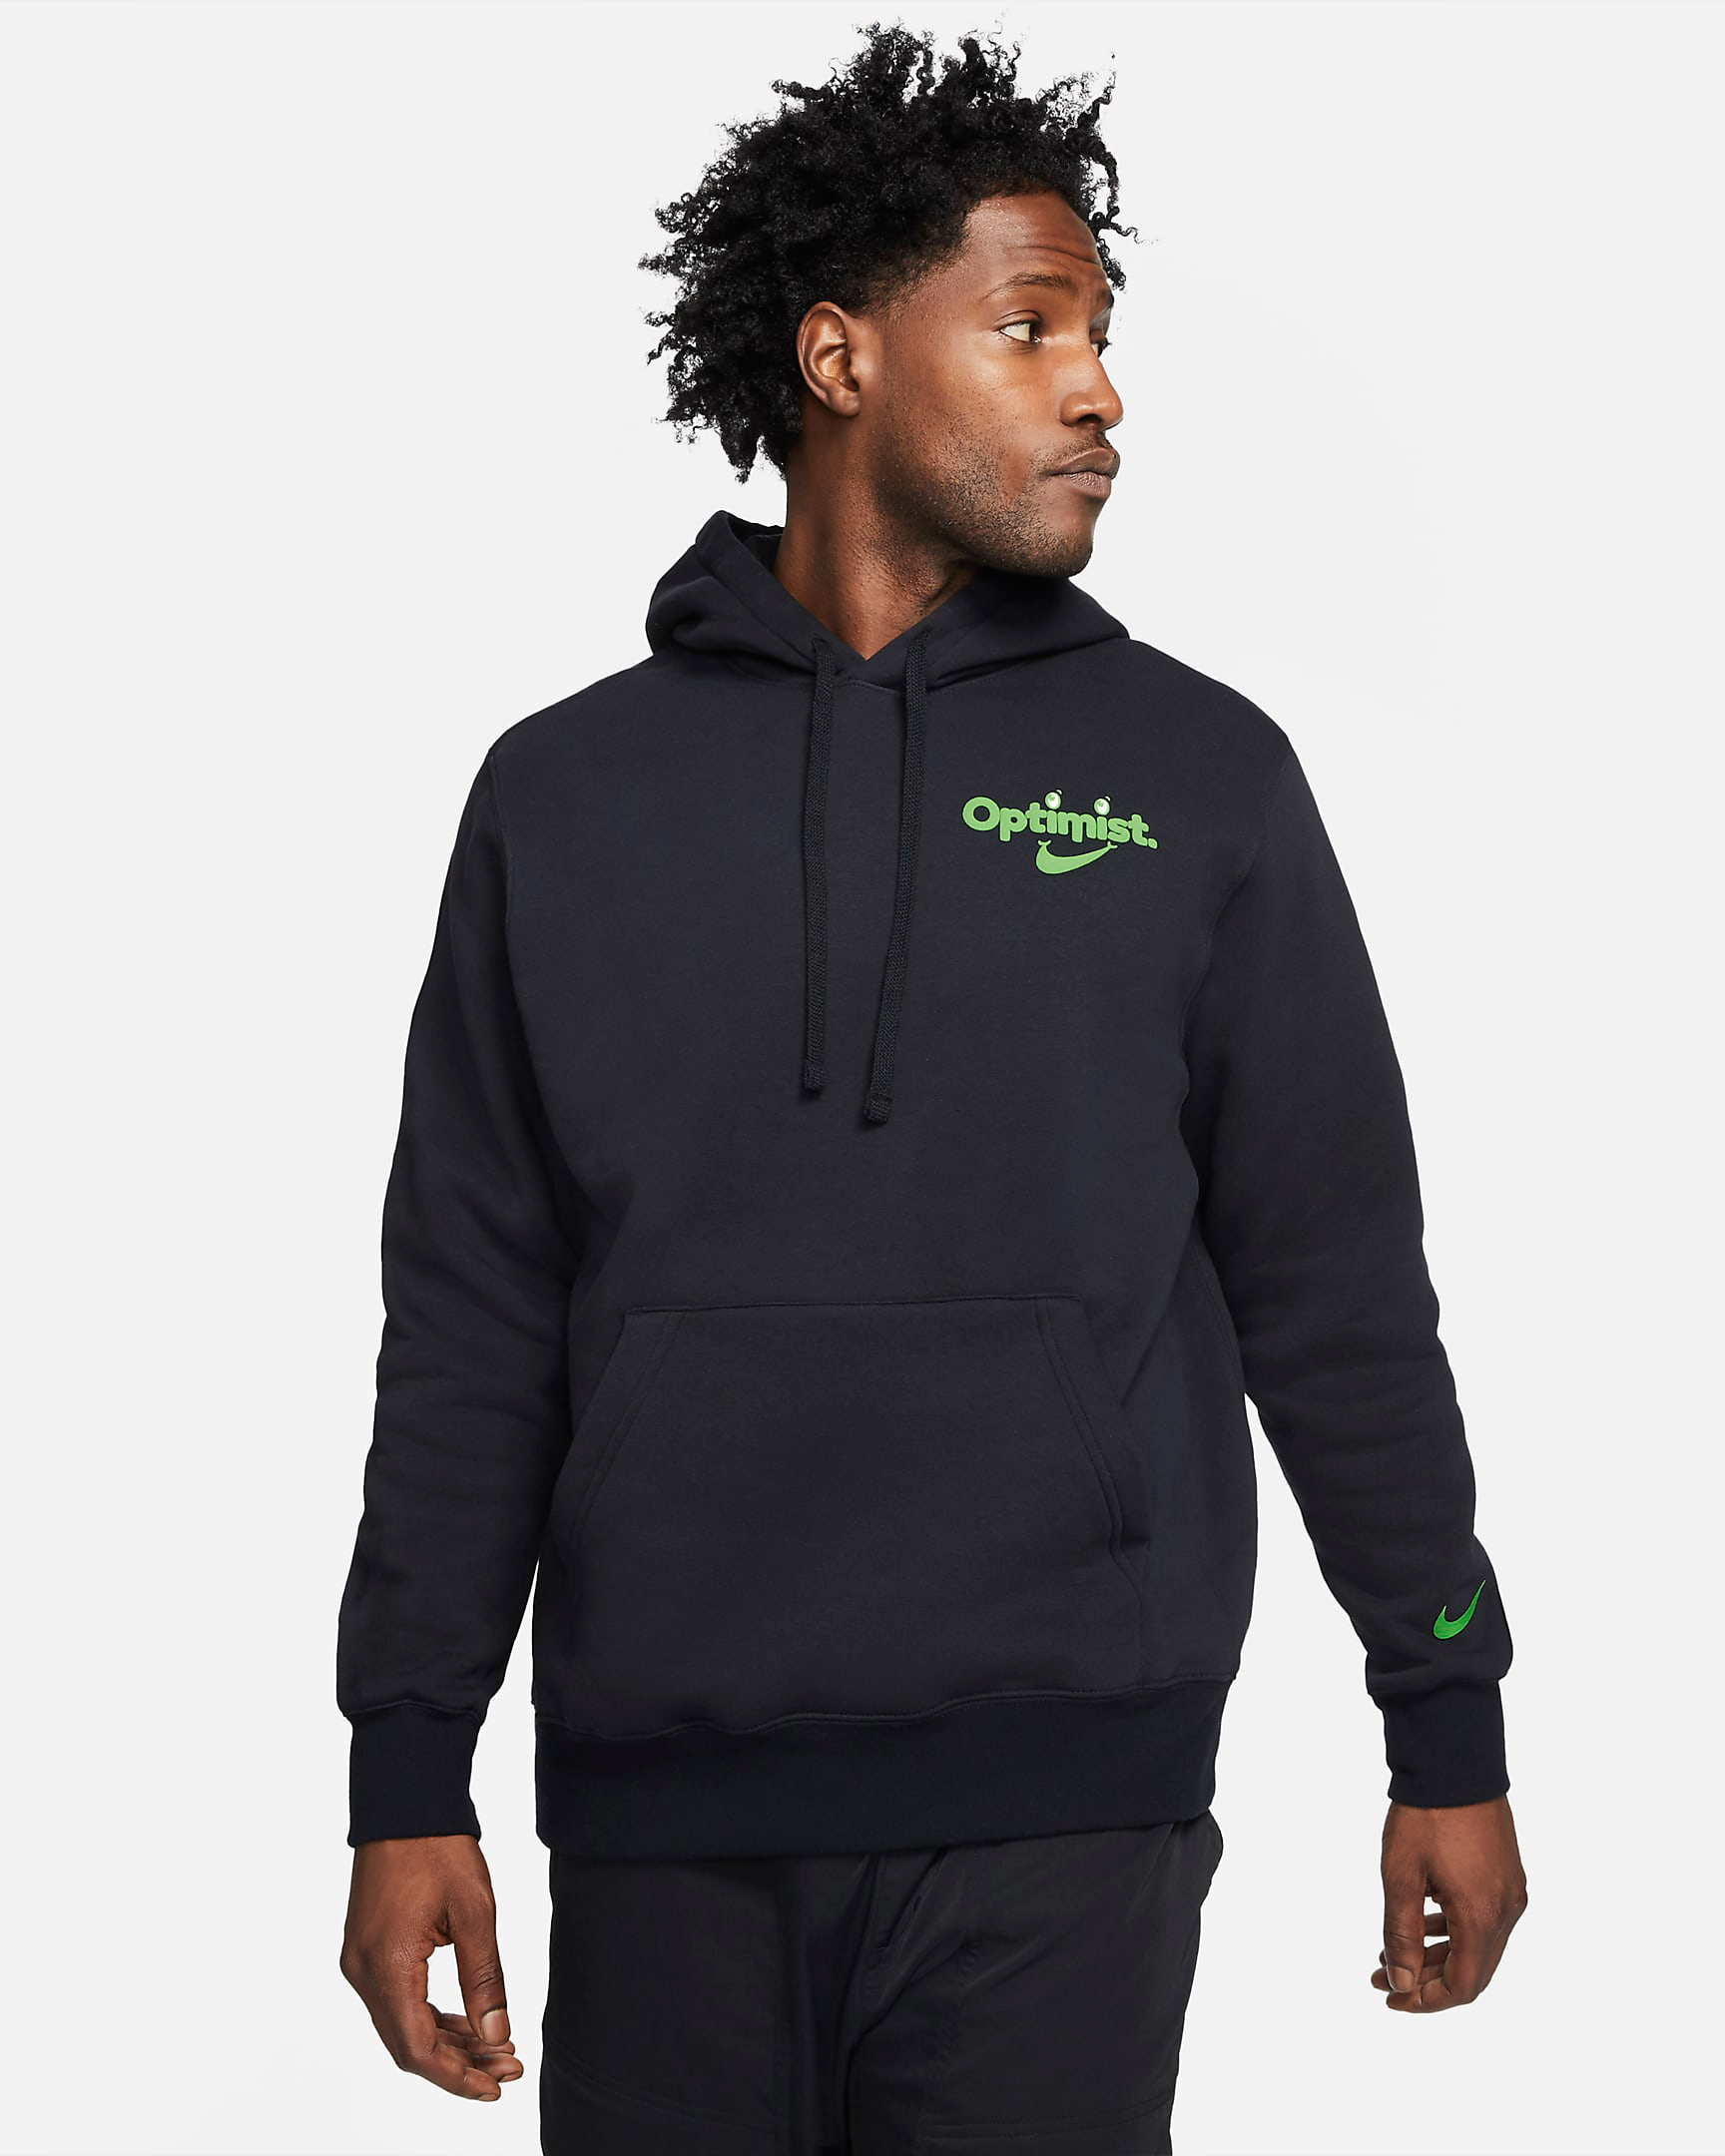 nike-sportswear-optimist-hoodie-black-green-1